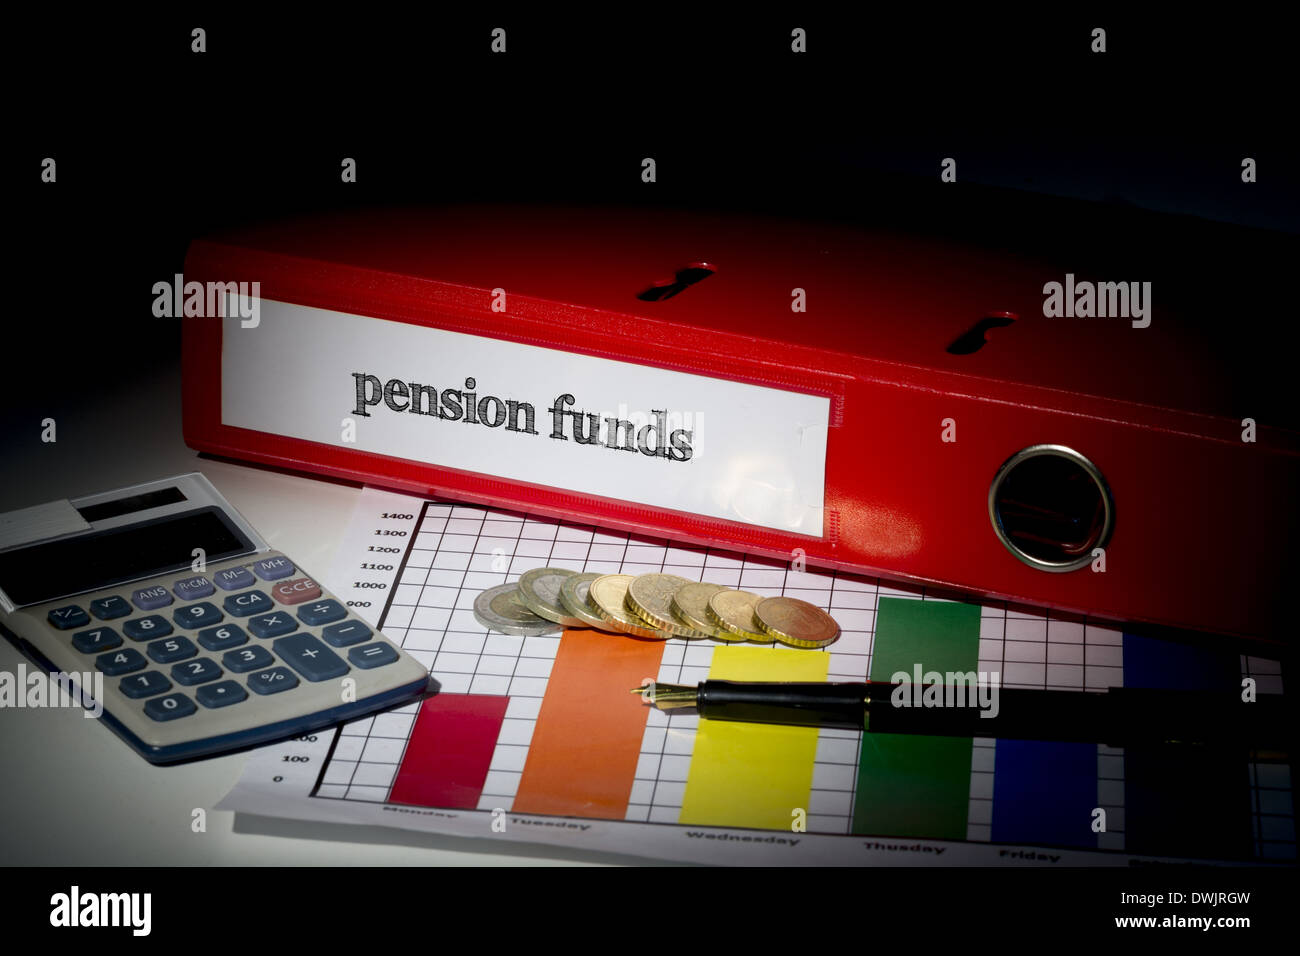 Pension funds on red business binder - Stock Image